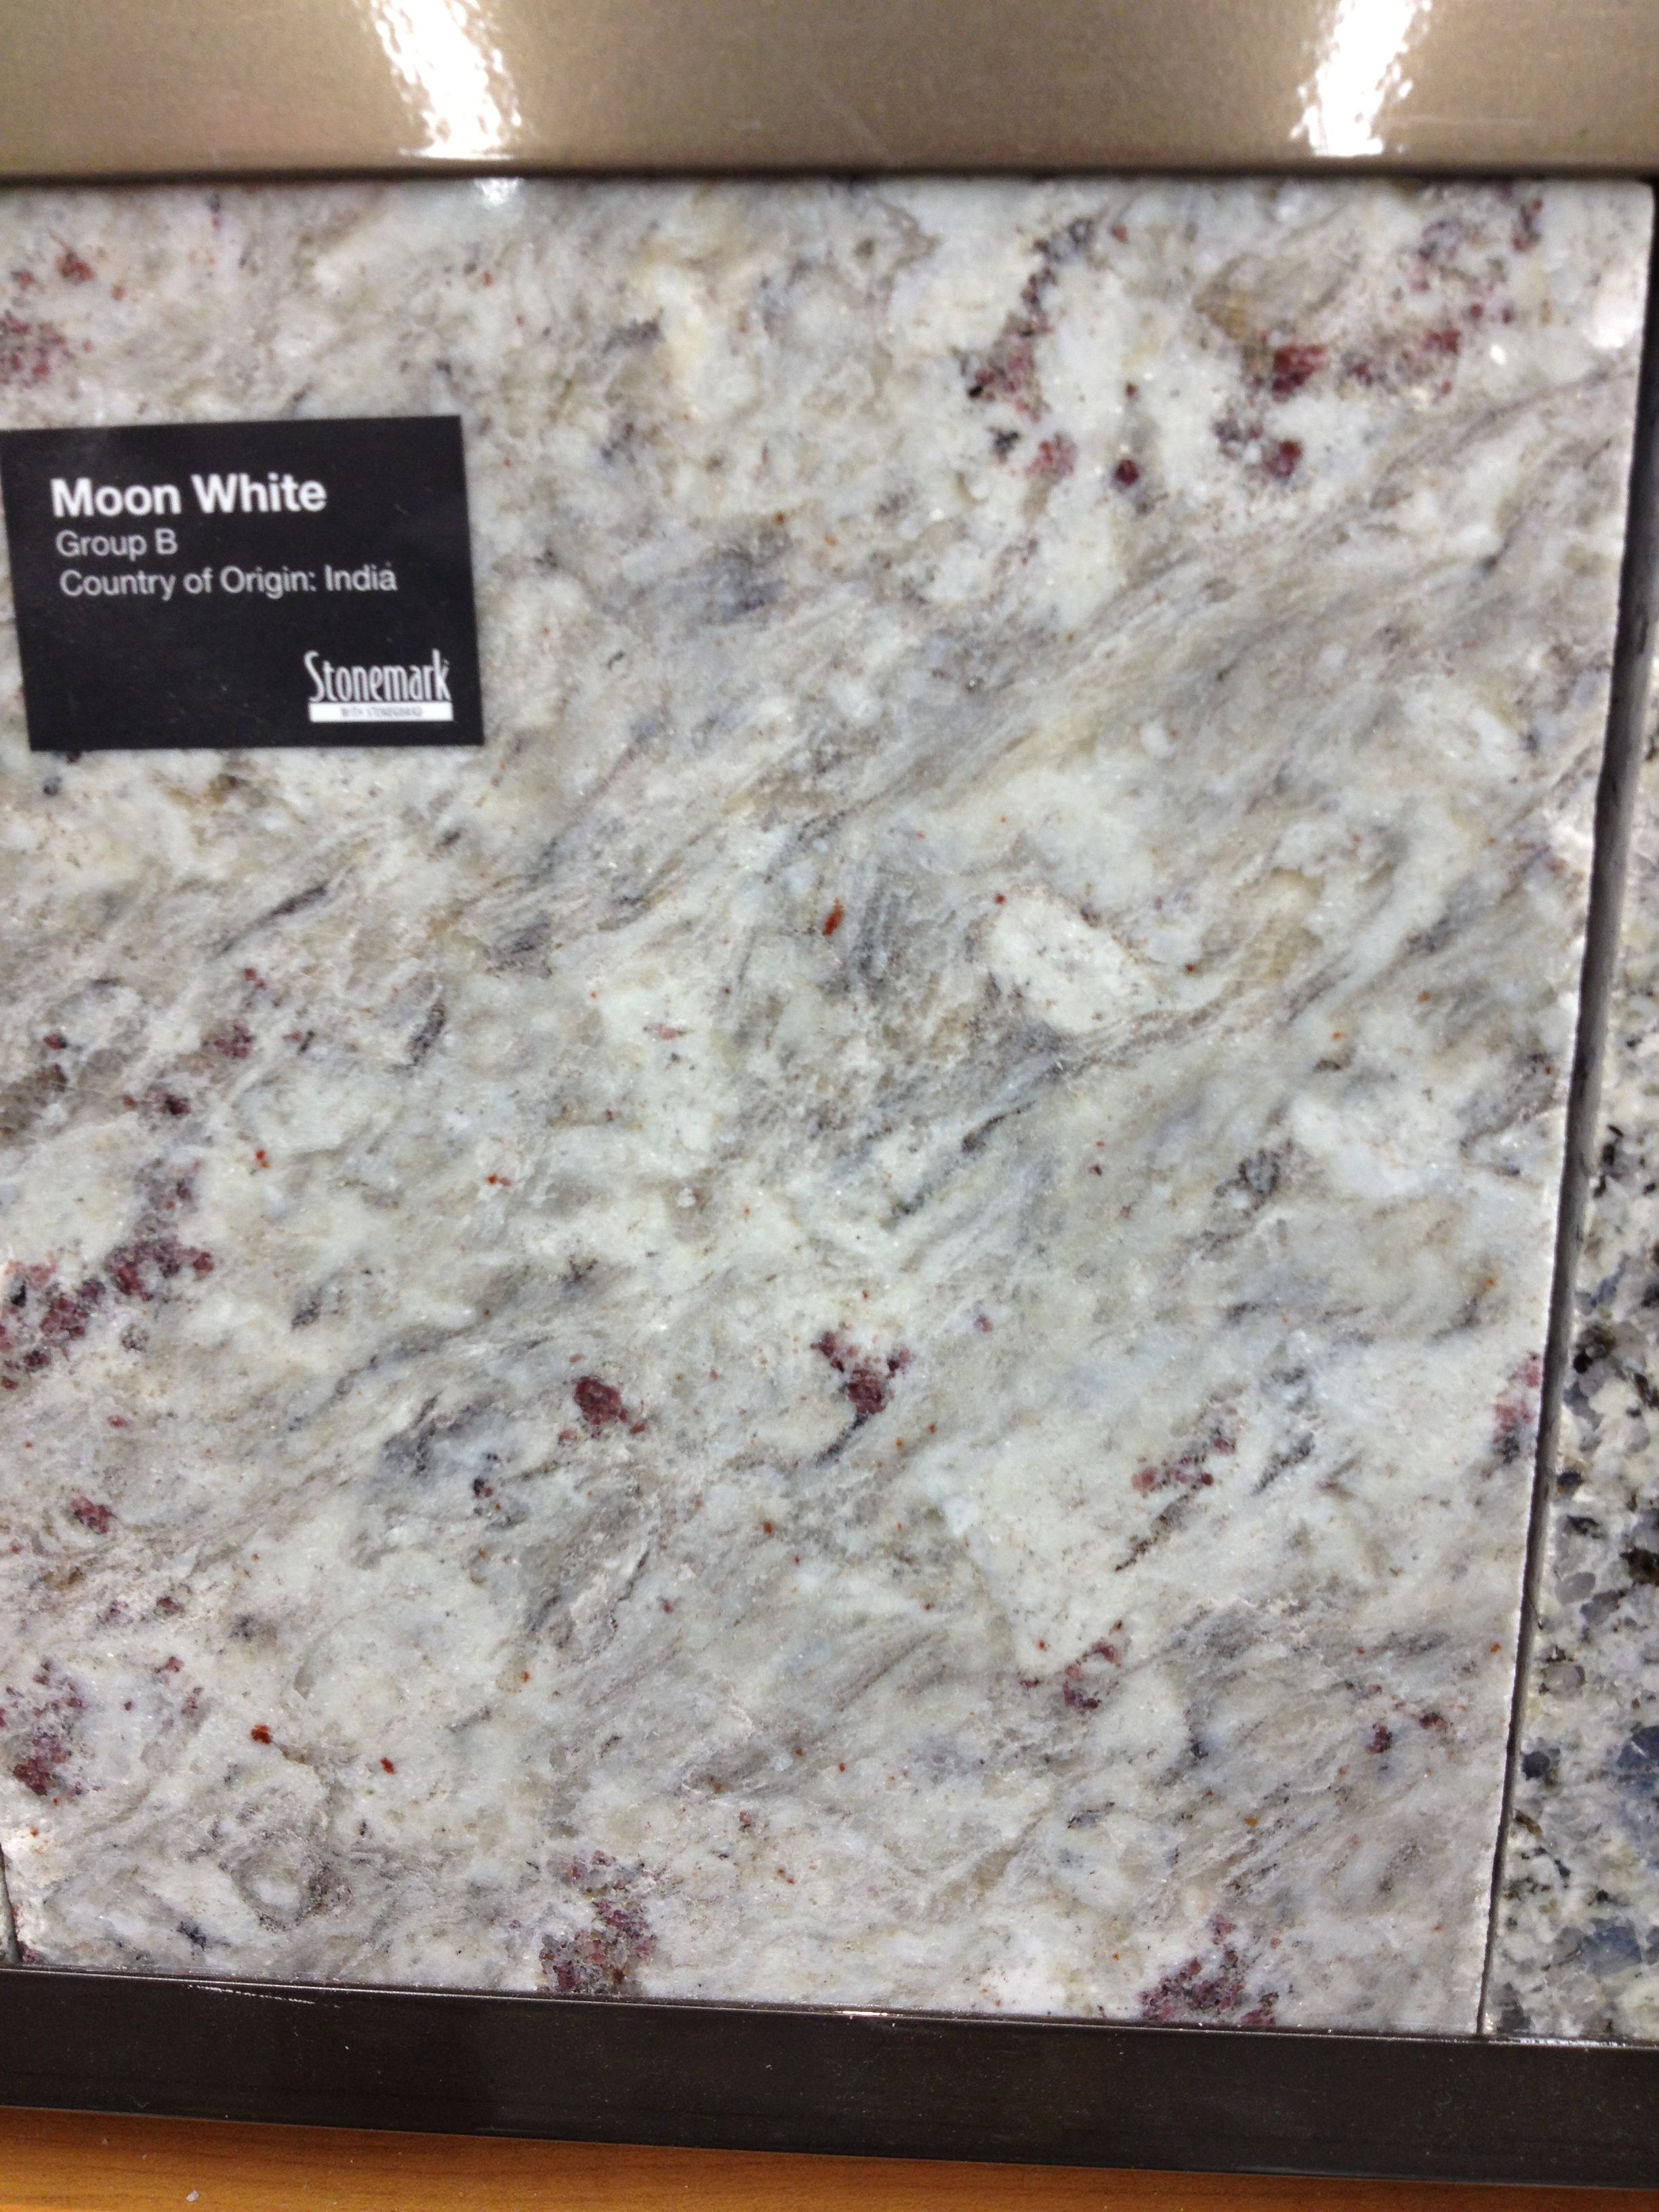 Image Gallery Website Moon White granite very much like Kashmir White but less speckly and more swirly